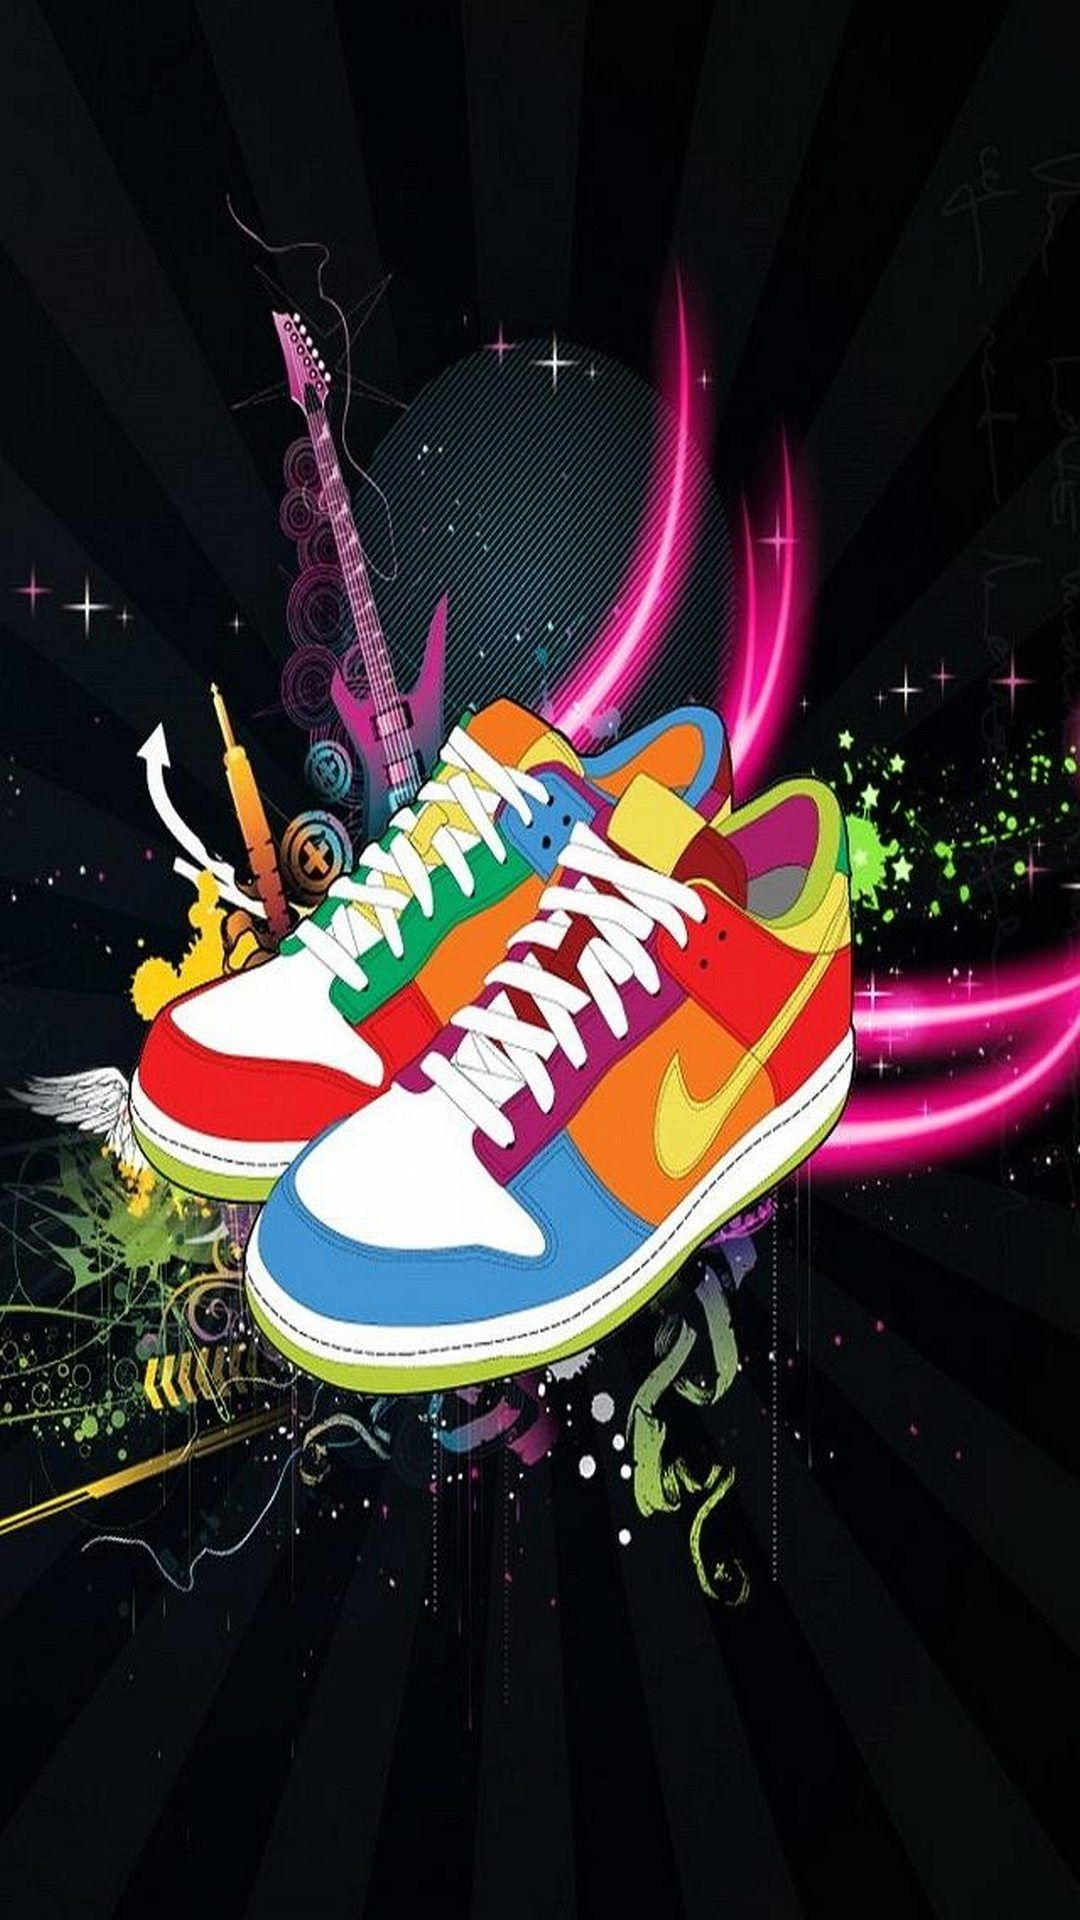 Tap And Get The Free App Art Multicolored Nike Shoes Black Cool Sneakers Hd Iphone 6 Plus Wallpaper Nike Wallpaper Nike Wallpaper Iphone Nike Free Shoes